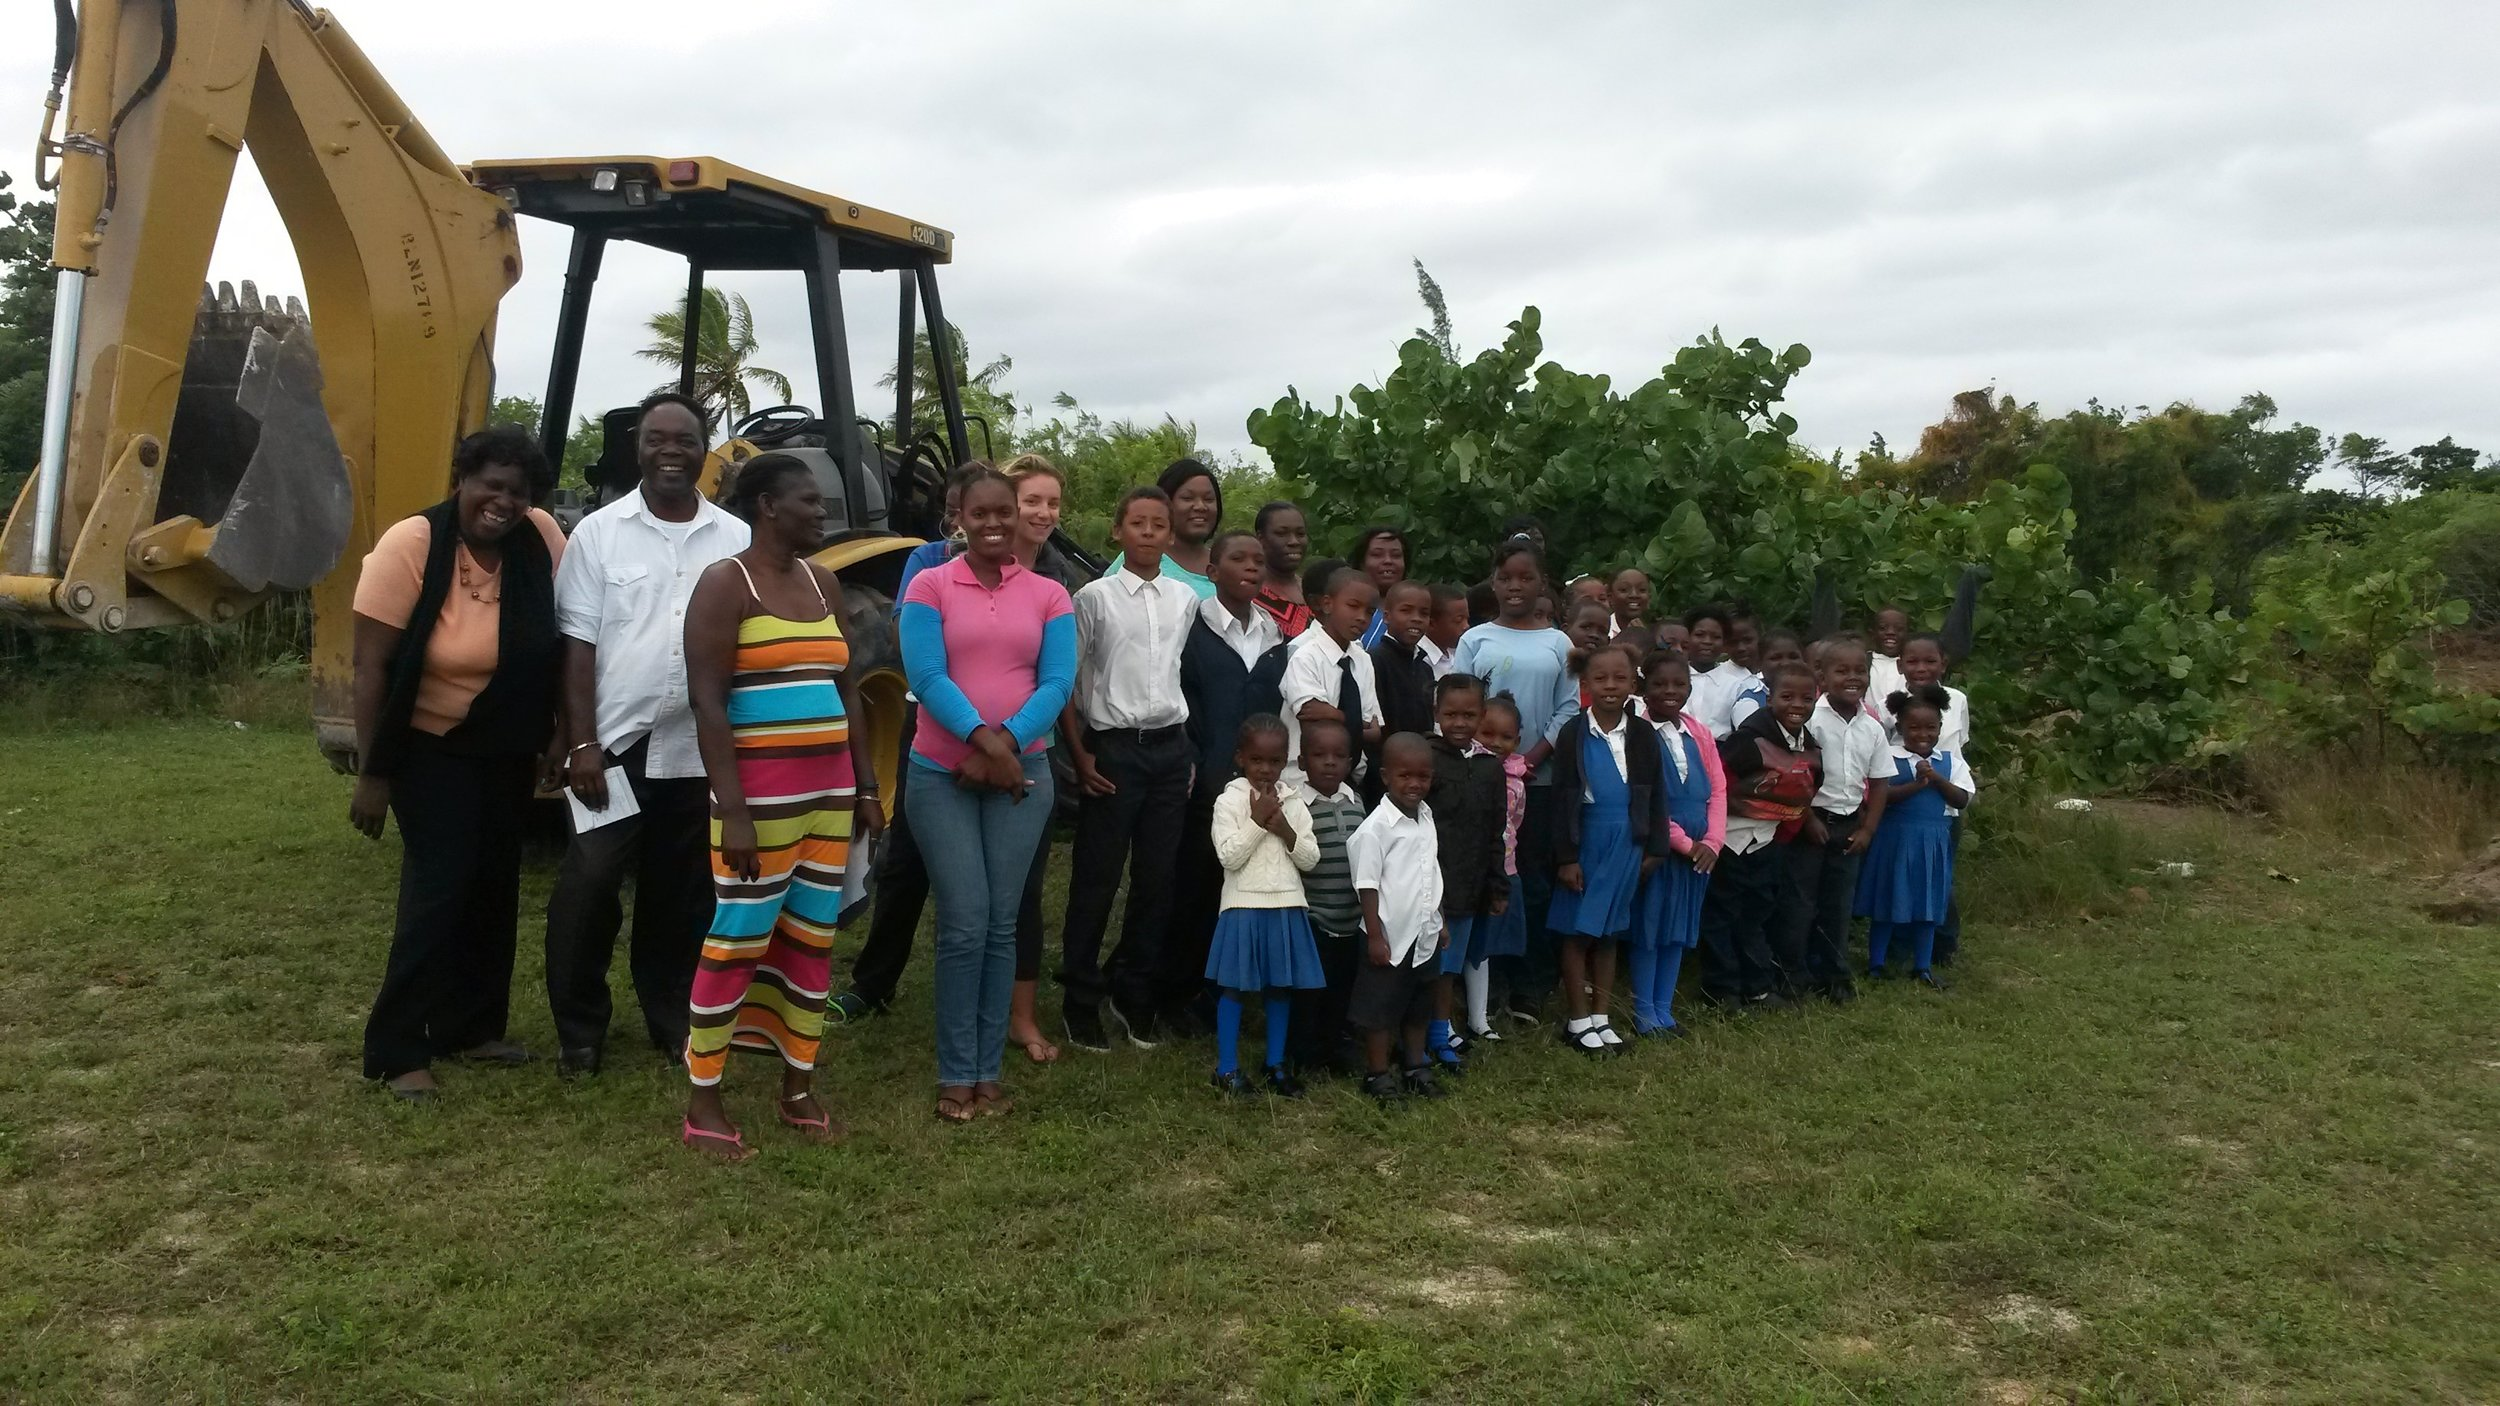 A big thank you to all our supporters- including the Cape Eleuthera Marina and Resort for donating their backhoe to clear the land!